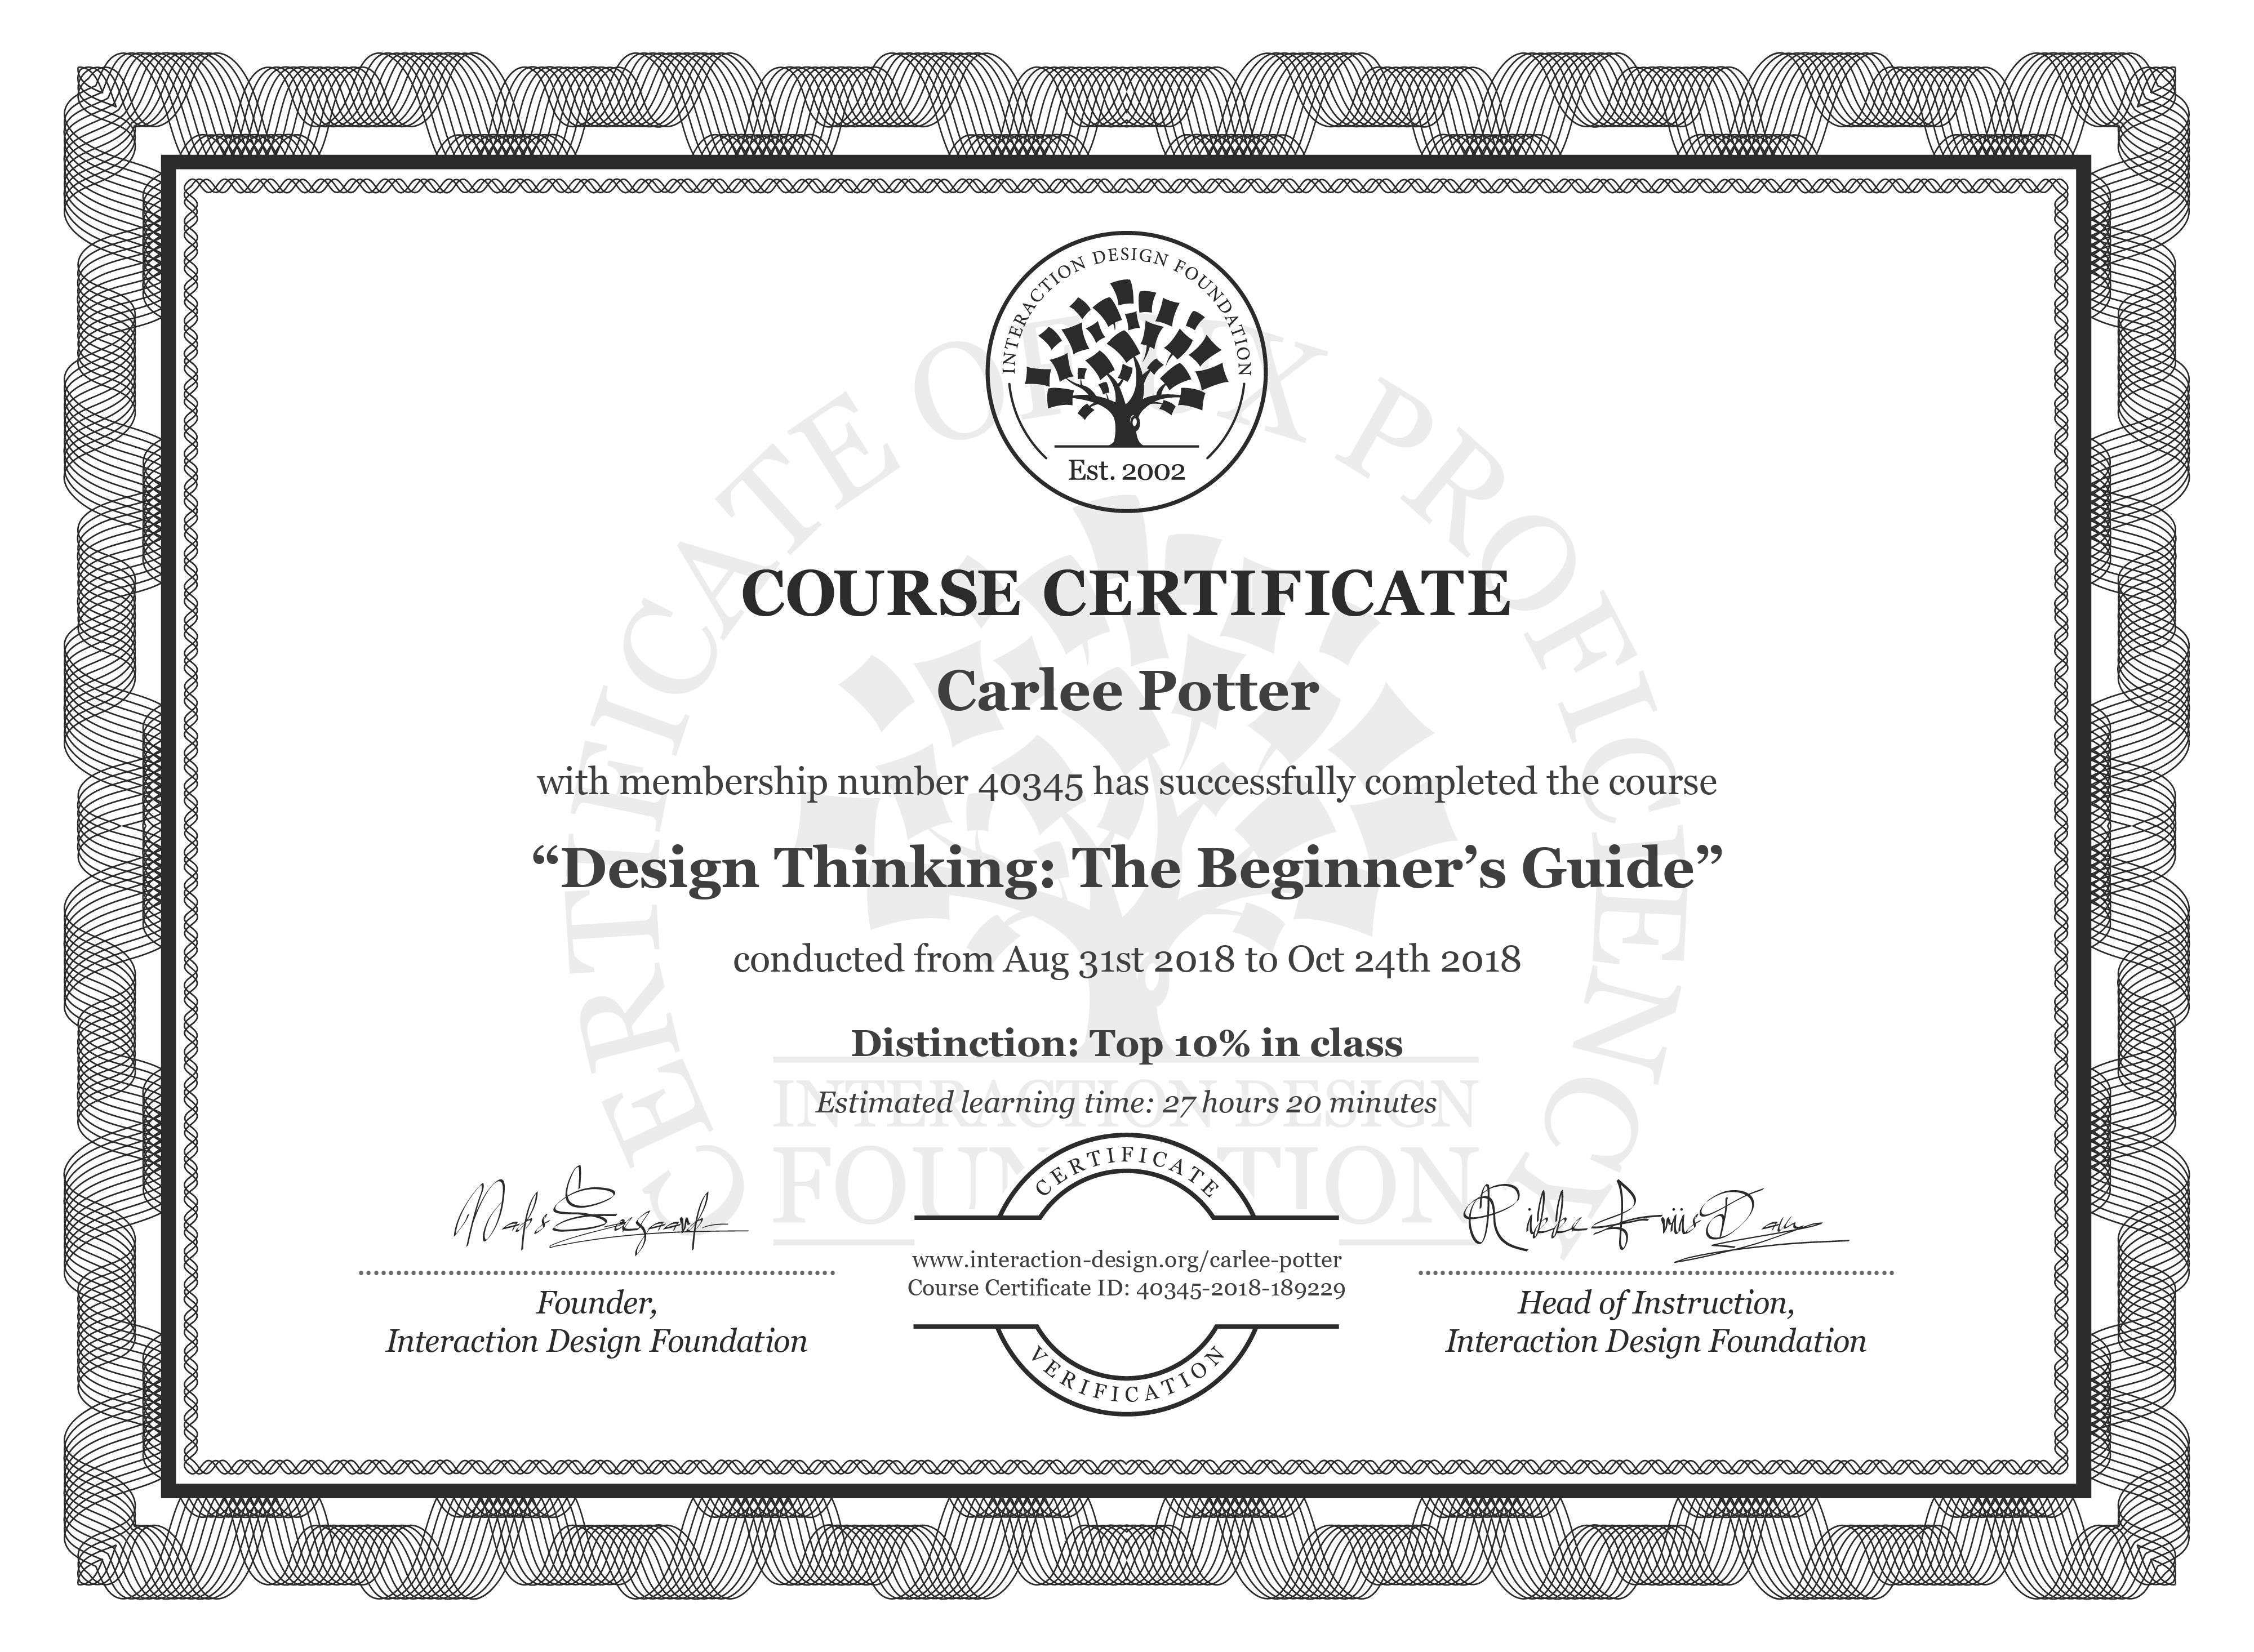 Carlee Potter: Course Certificate - Design Thinking: The Beginner's Guide